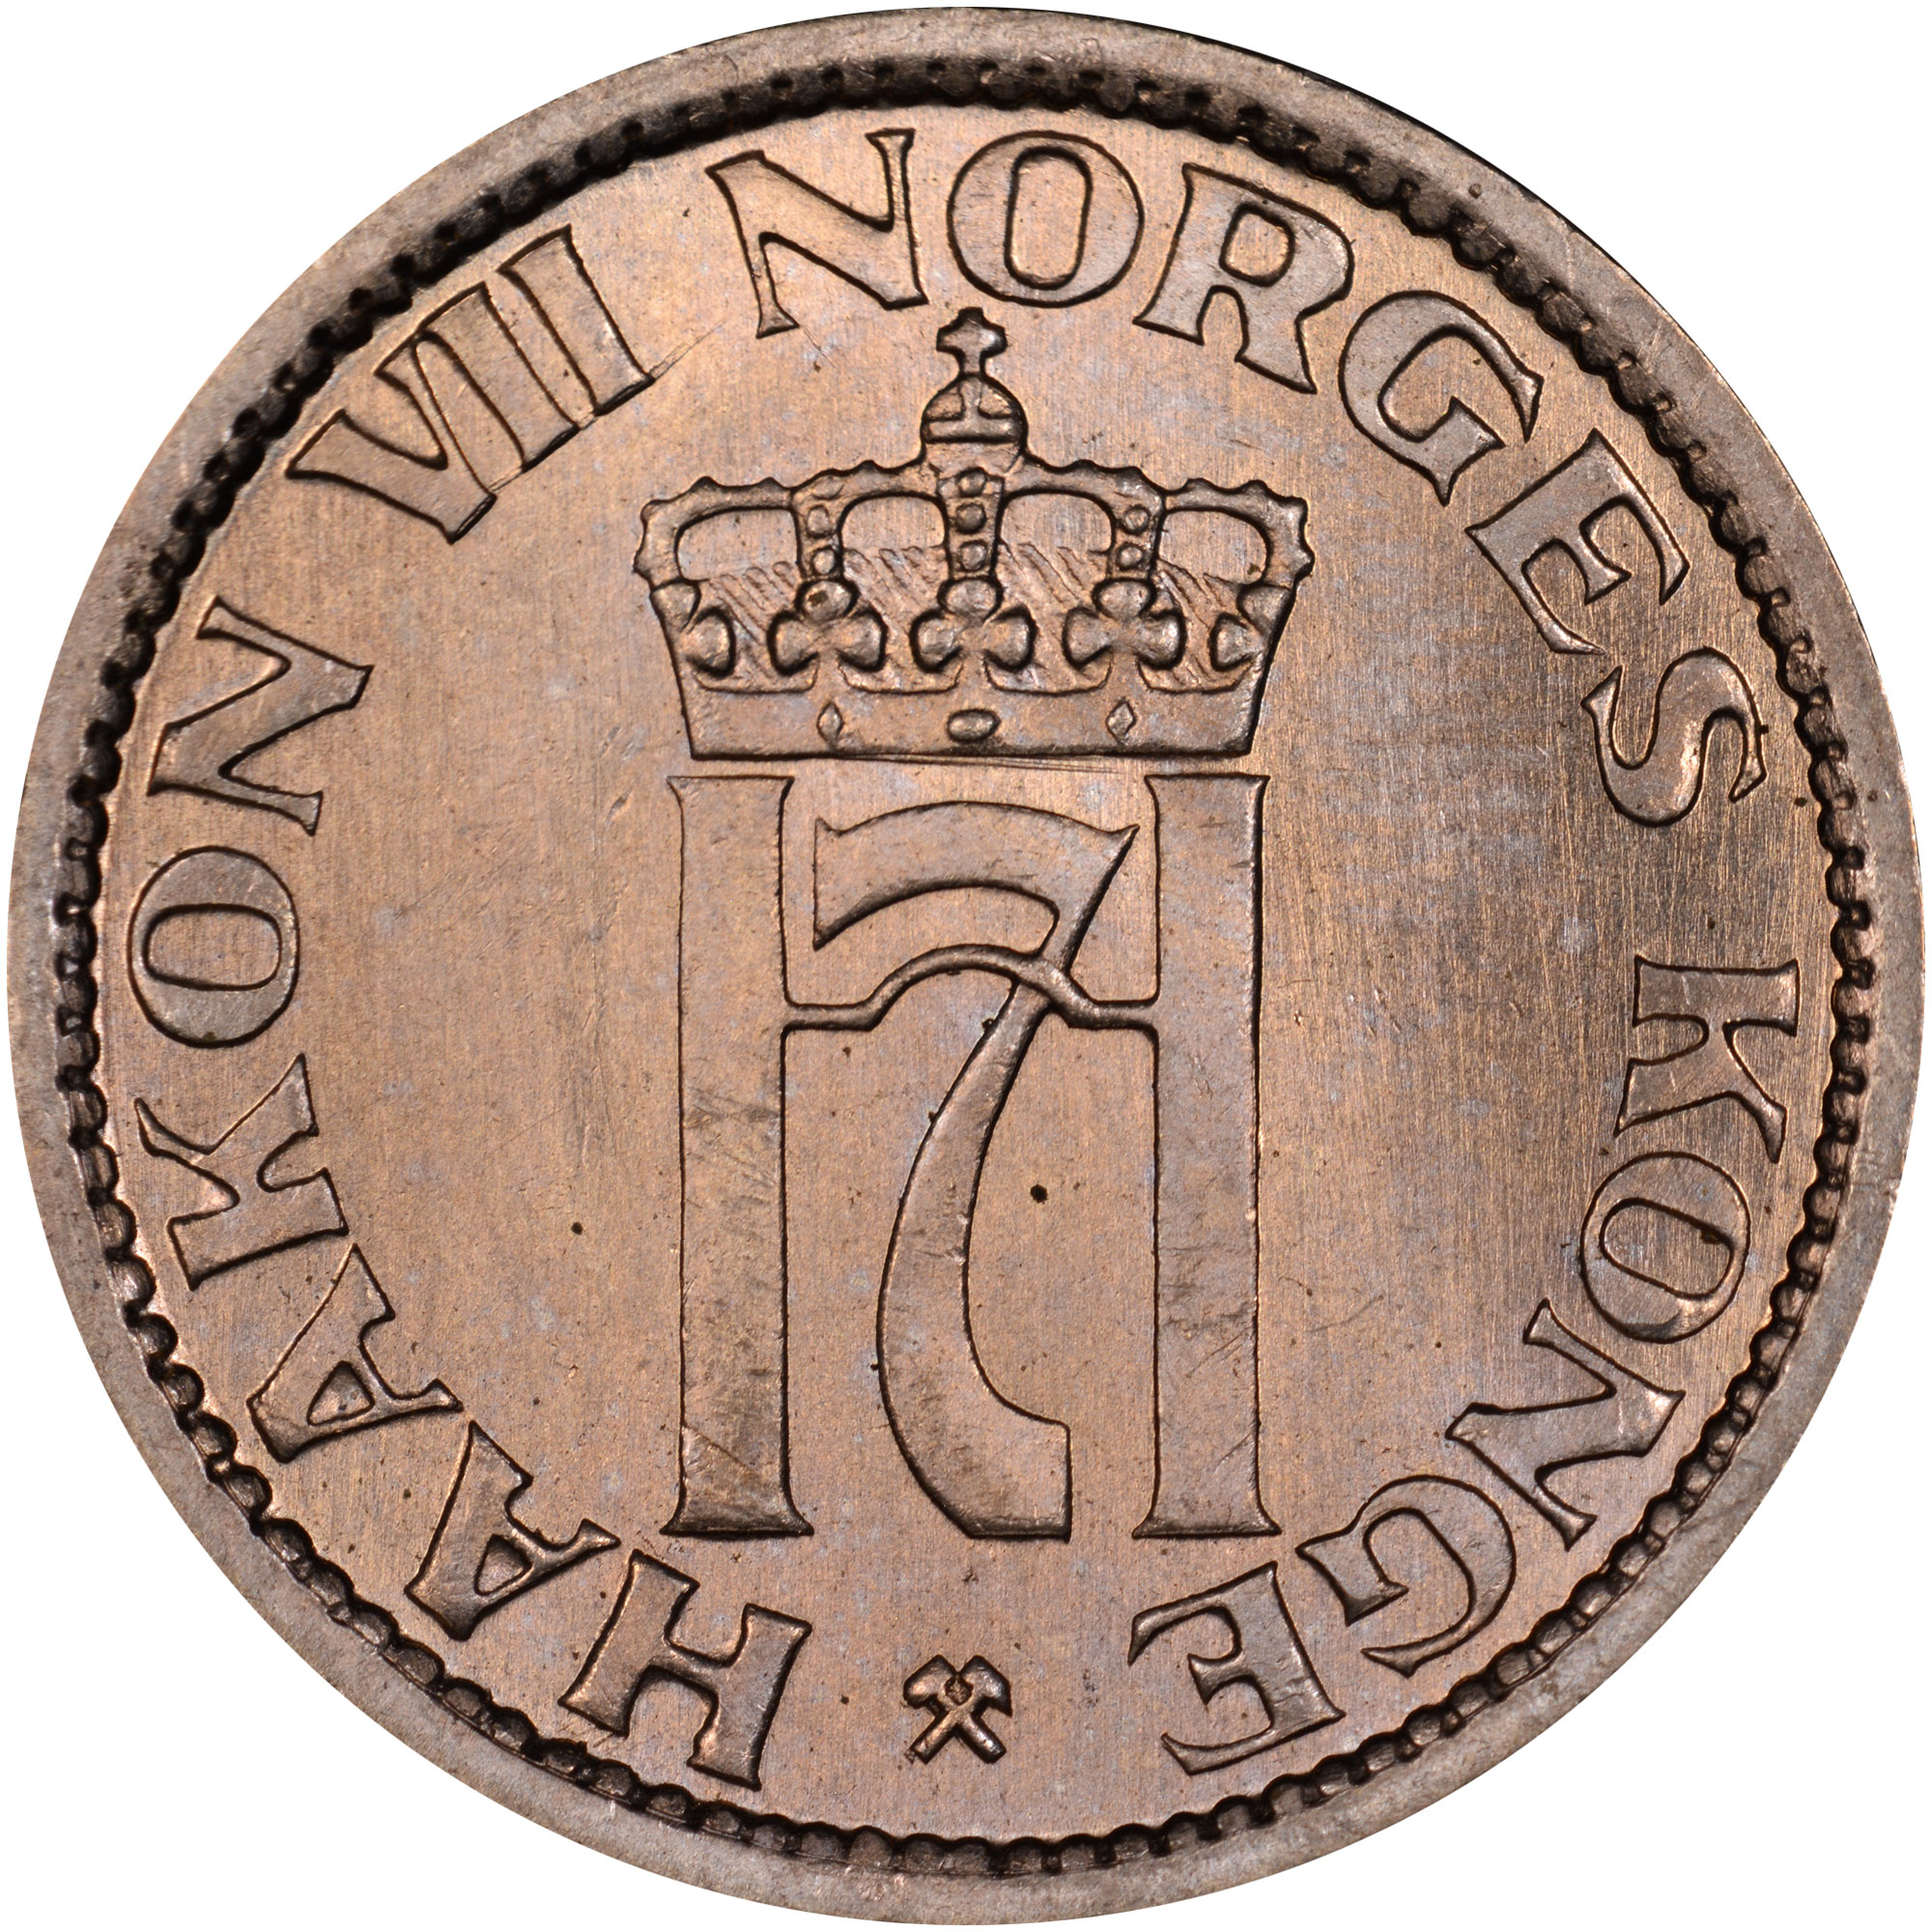 1953-1957 Norway 50 Ore obverse